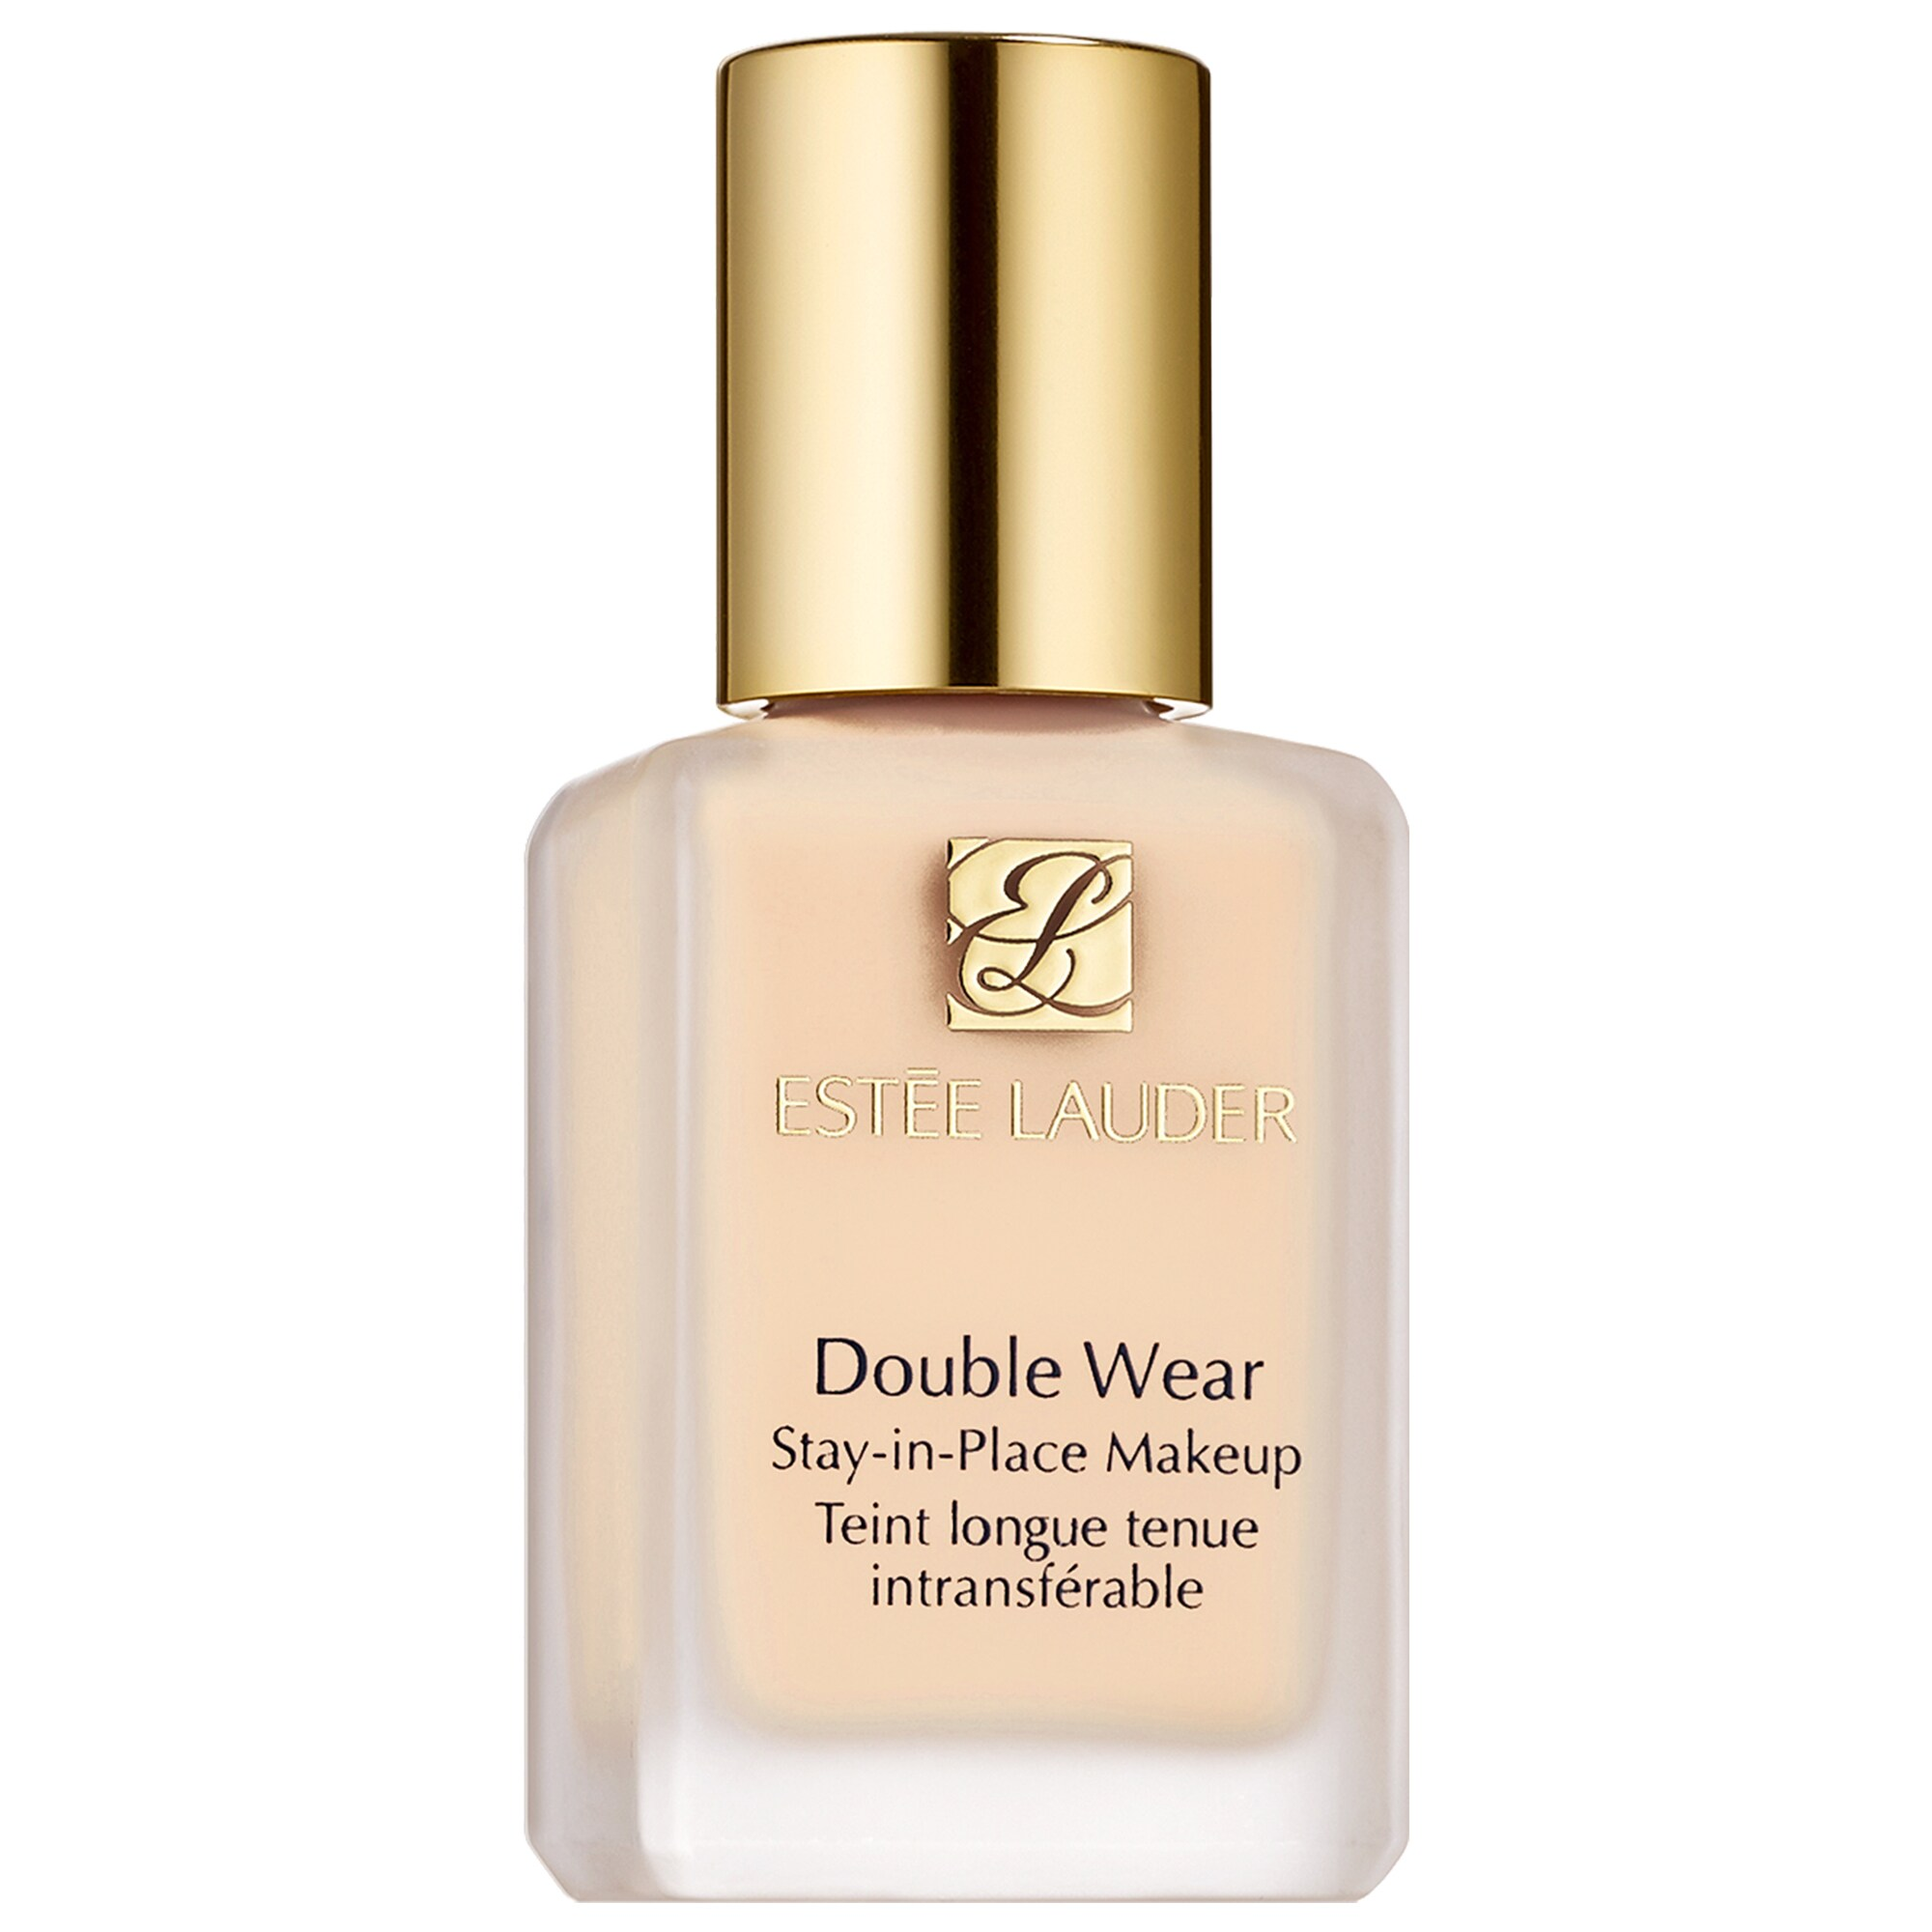 Estee Lauder - Double Wear Stay-in-Place Foundation